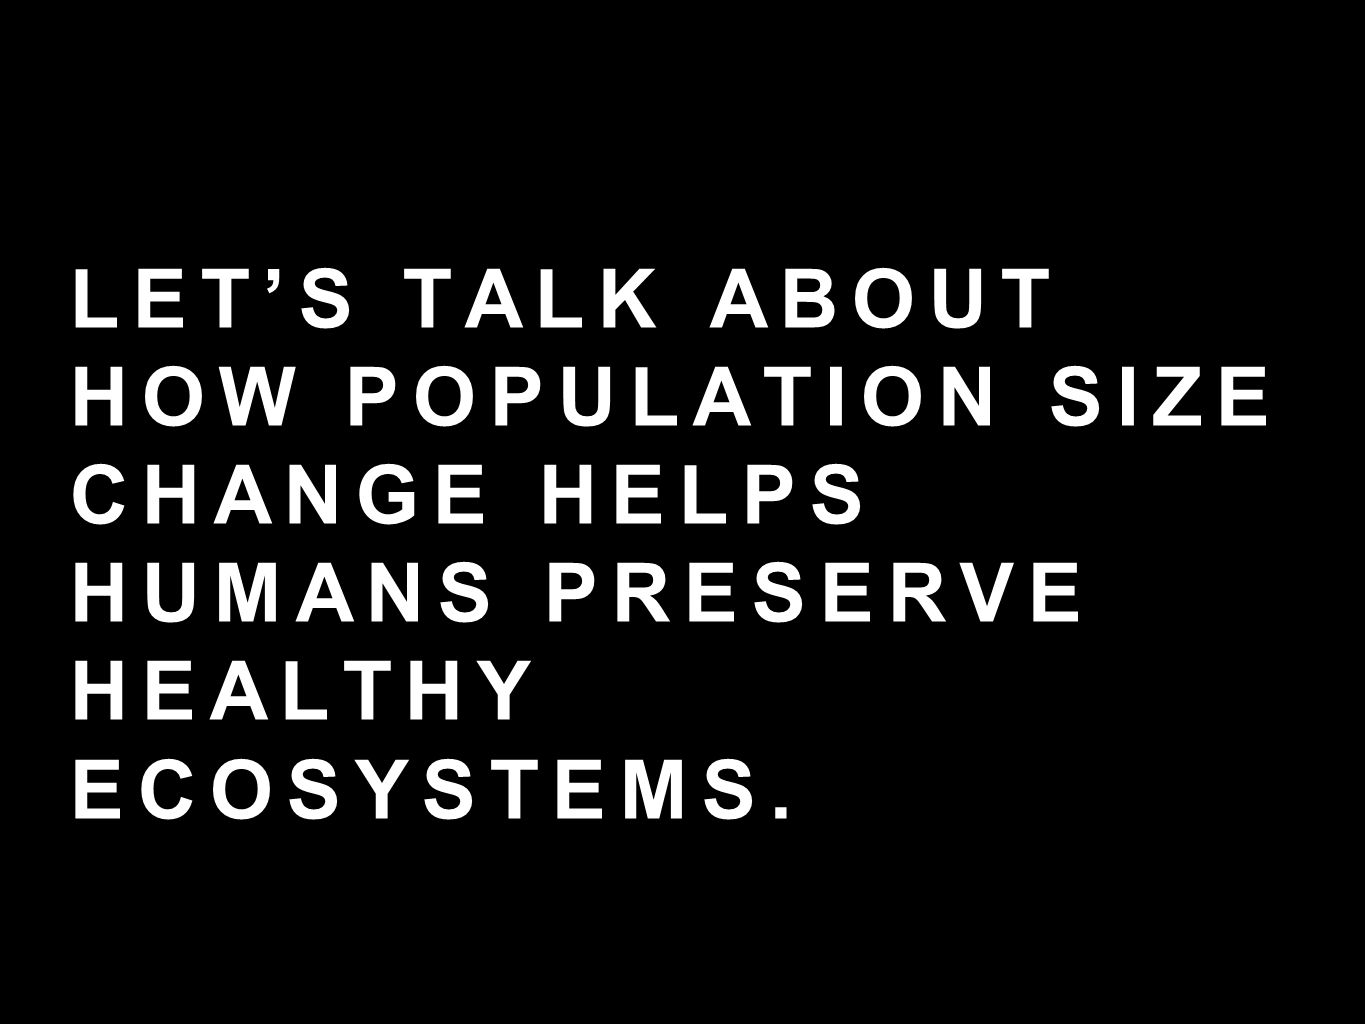 LET'S TALK ABOUT HOW POPULATION SIZE CHANGE HELPS HUMANS PRESERVE HEALTHY ECOSYSTEMS.